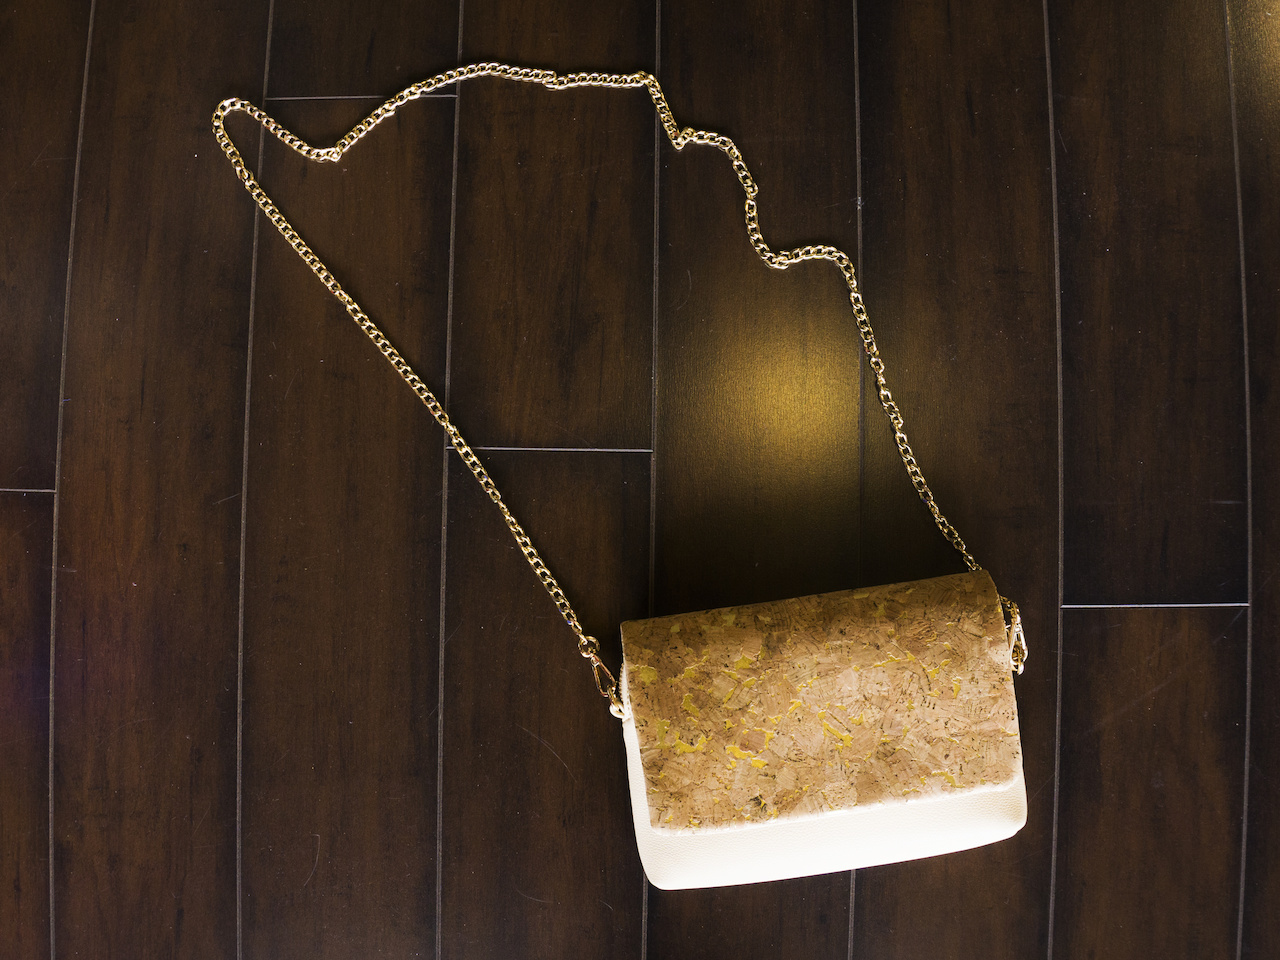 Pair the olive dress above with this cork accent bag, $64